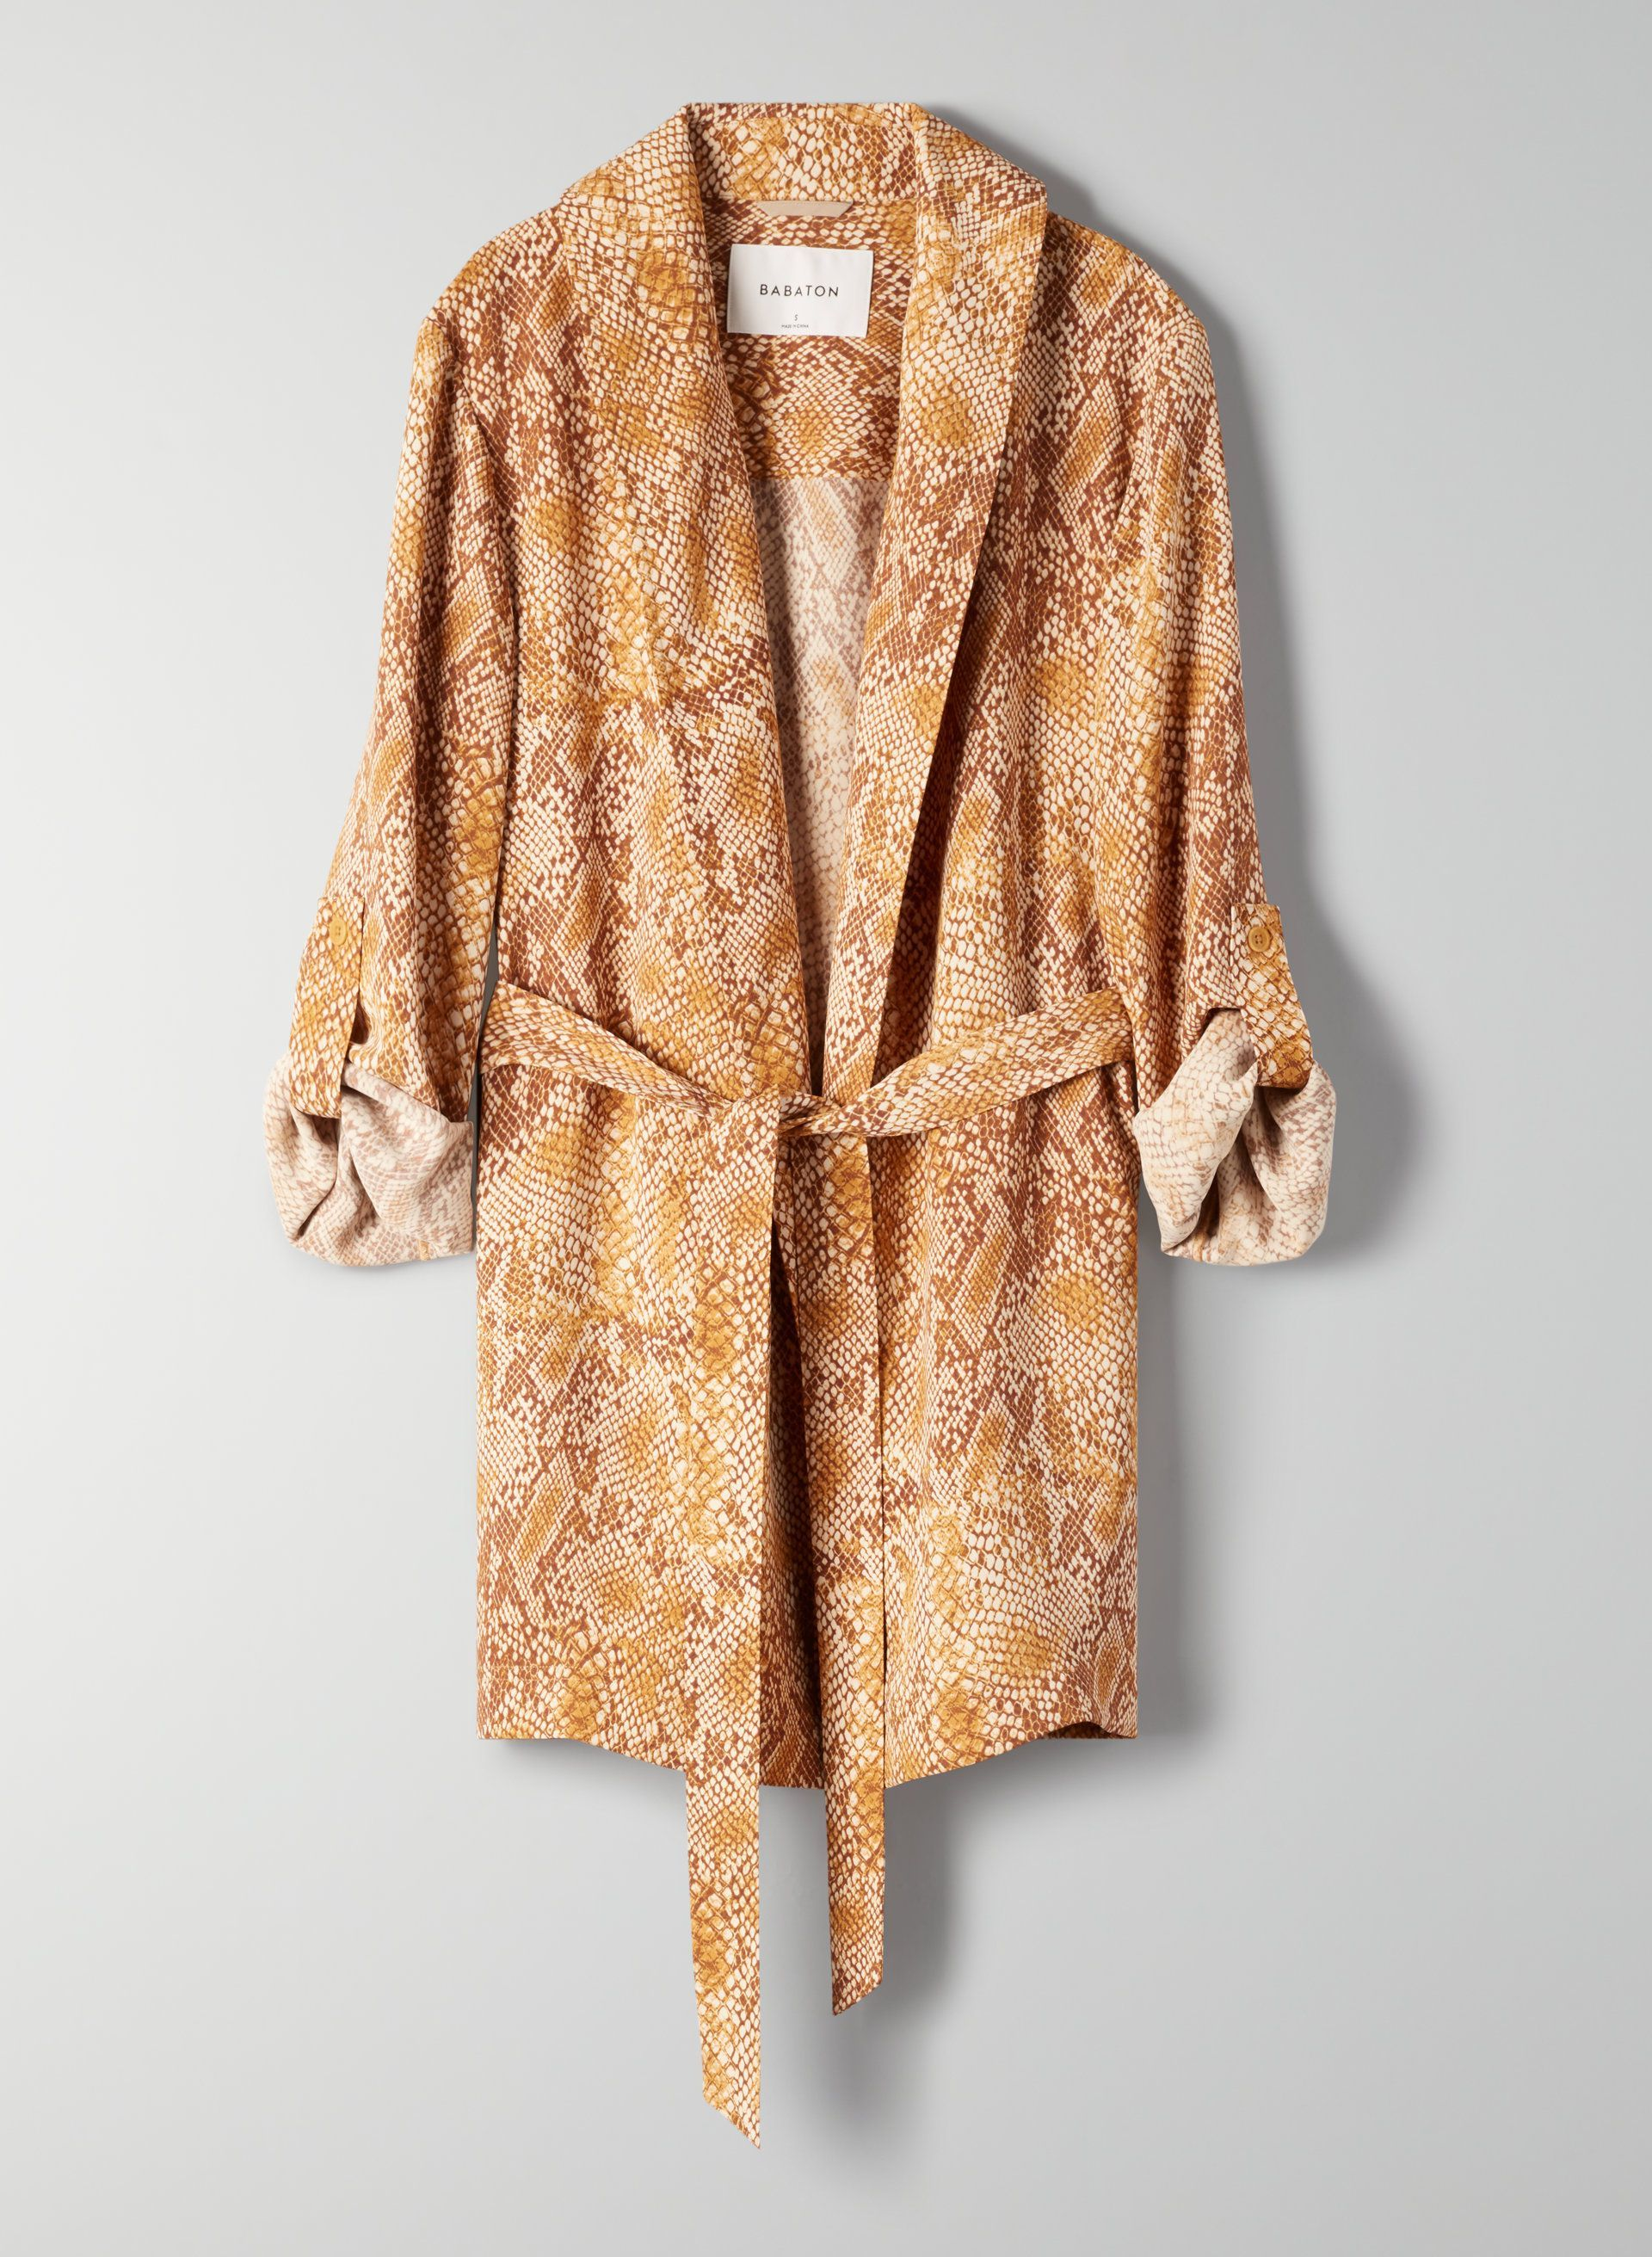 Kahlo Robe Babaton aritzia.com $178.00 SHOP NOW A snake print robe can be a punchy layer for neutral lovers.